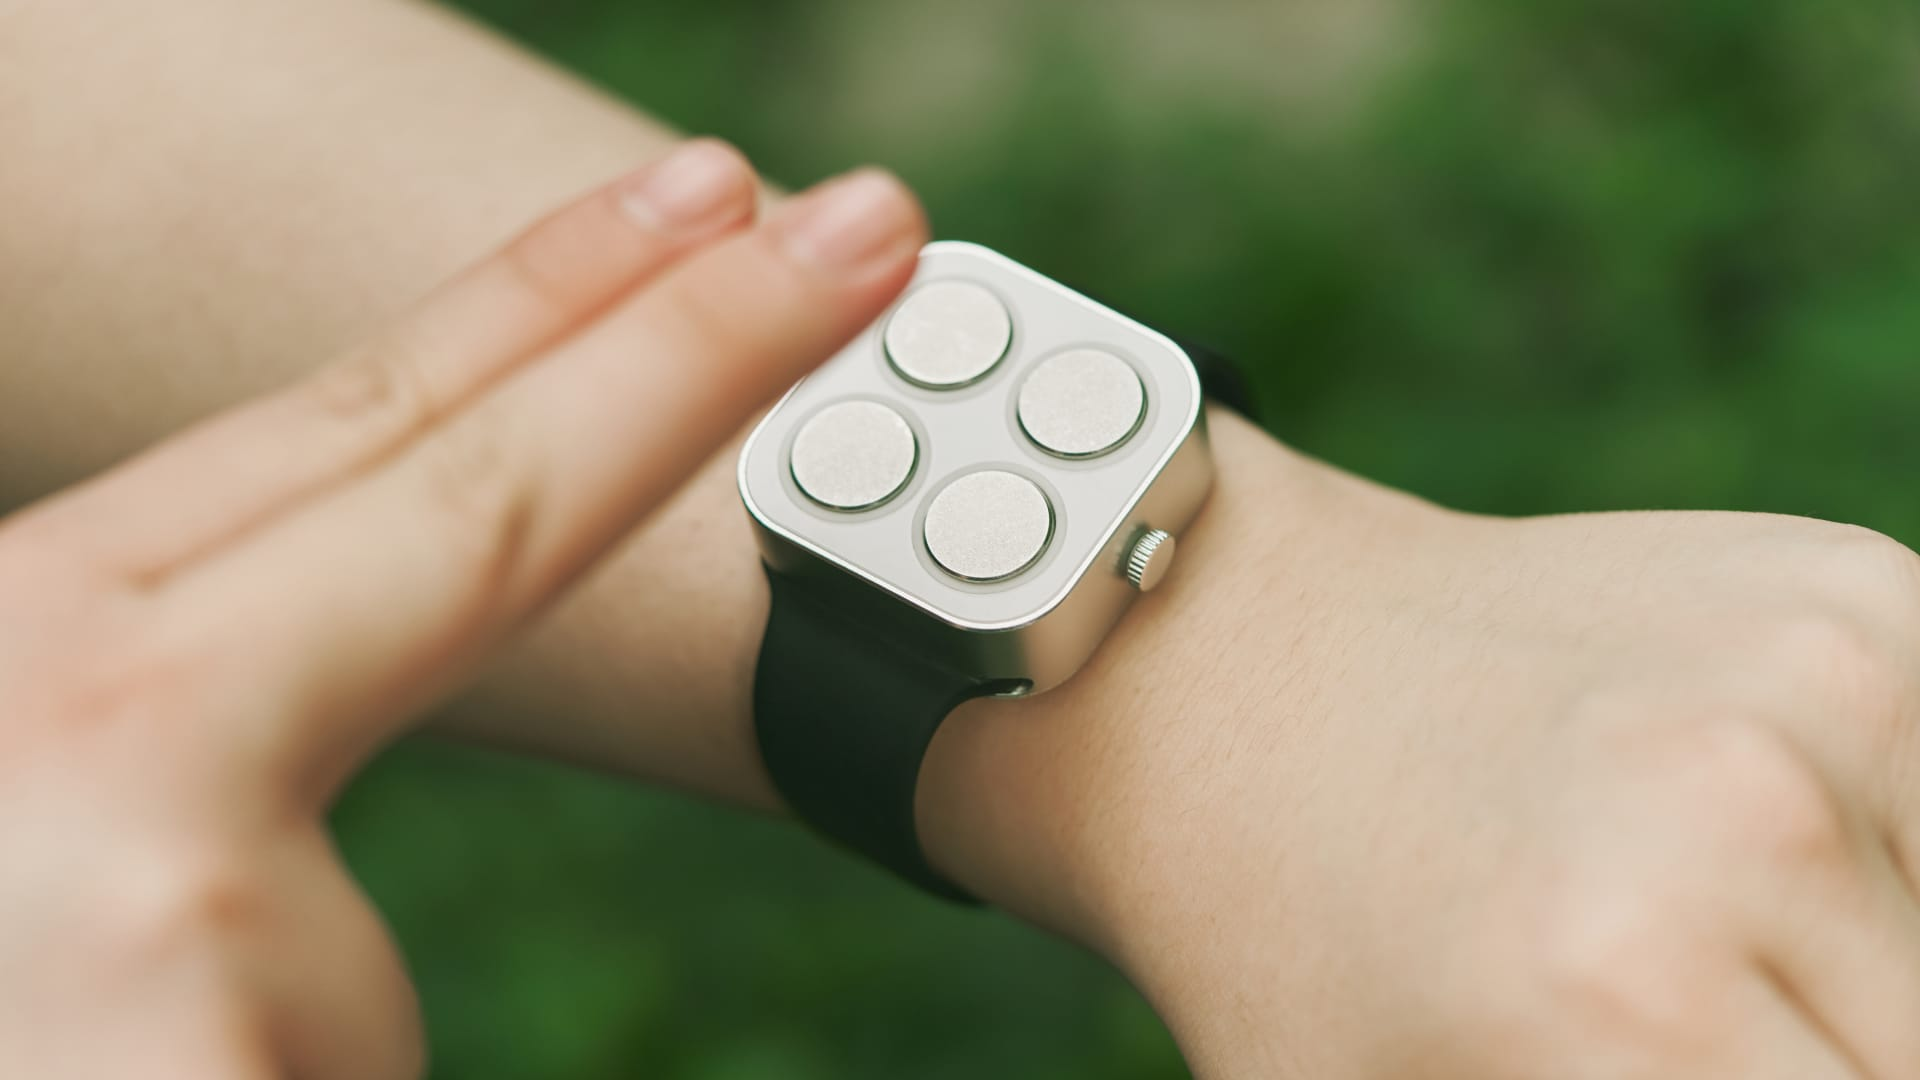 Paradox Computers' braille smartwatches tell time and date by vibration haptic for the visually impaired.